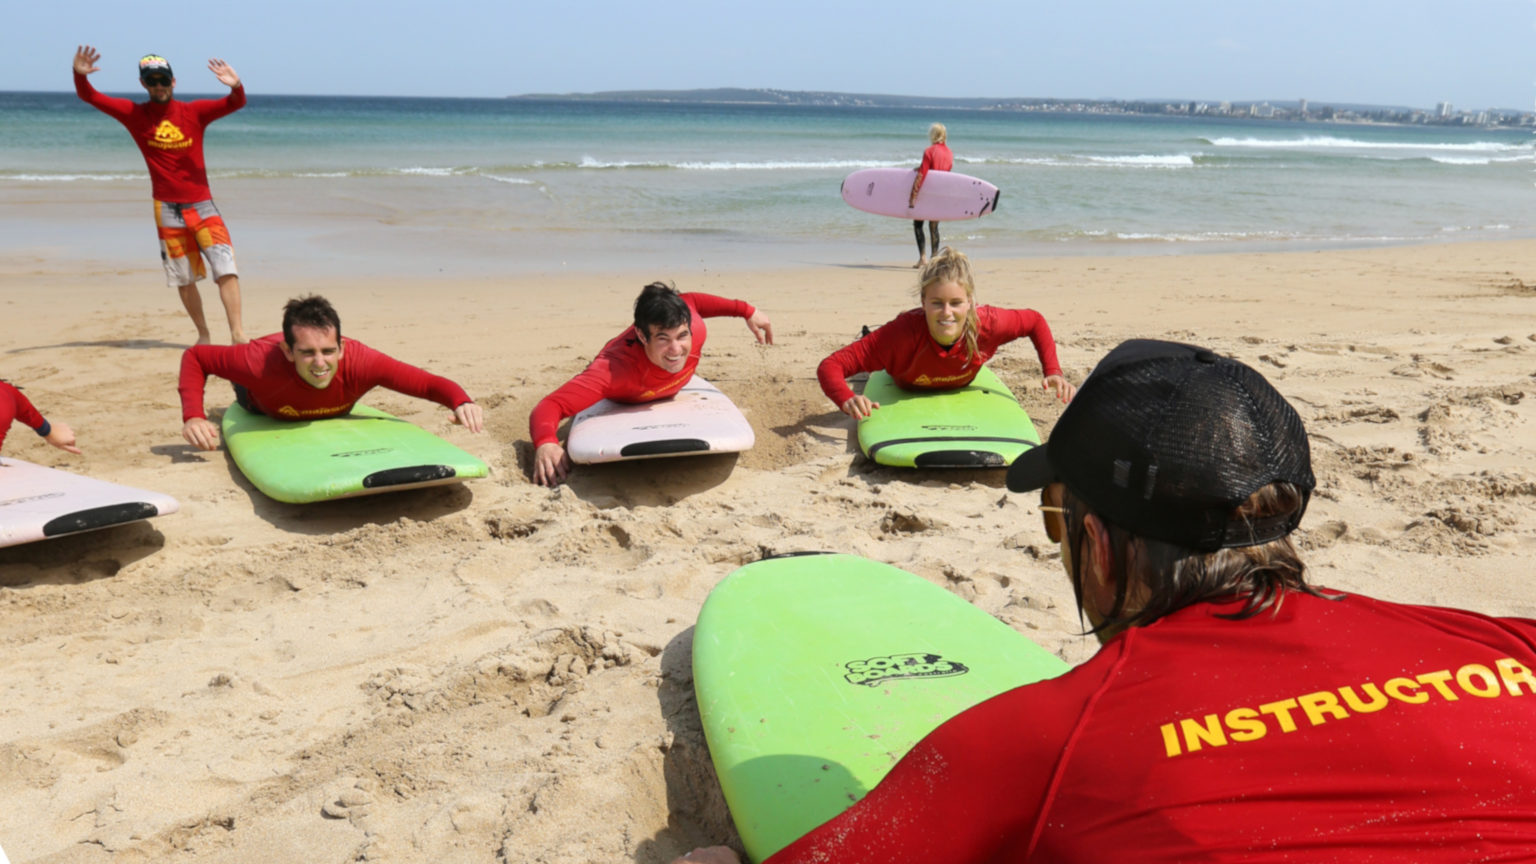 Australia-Sydney-Surf-Lessons-Travellers-Group-Instructor-Leo-Tamburri-cropped